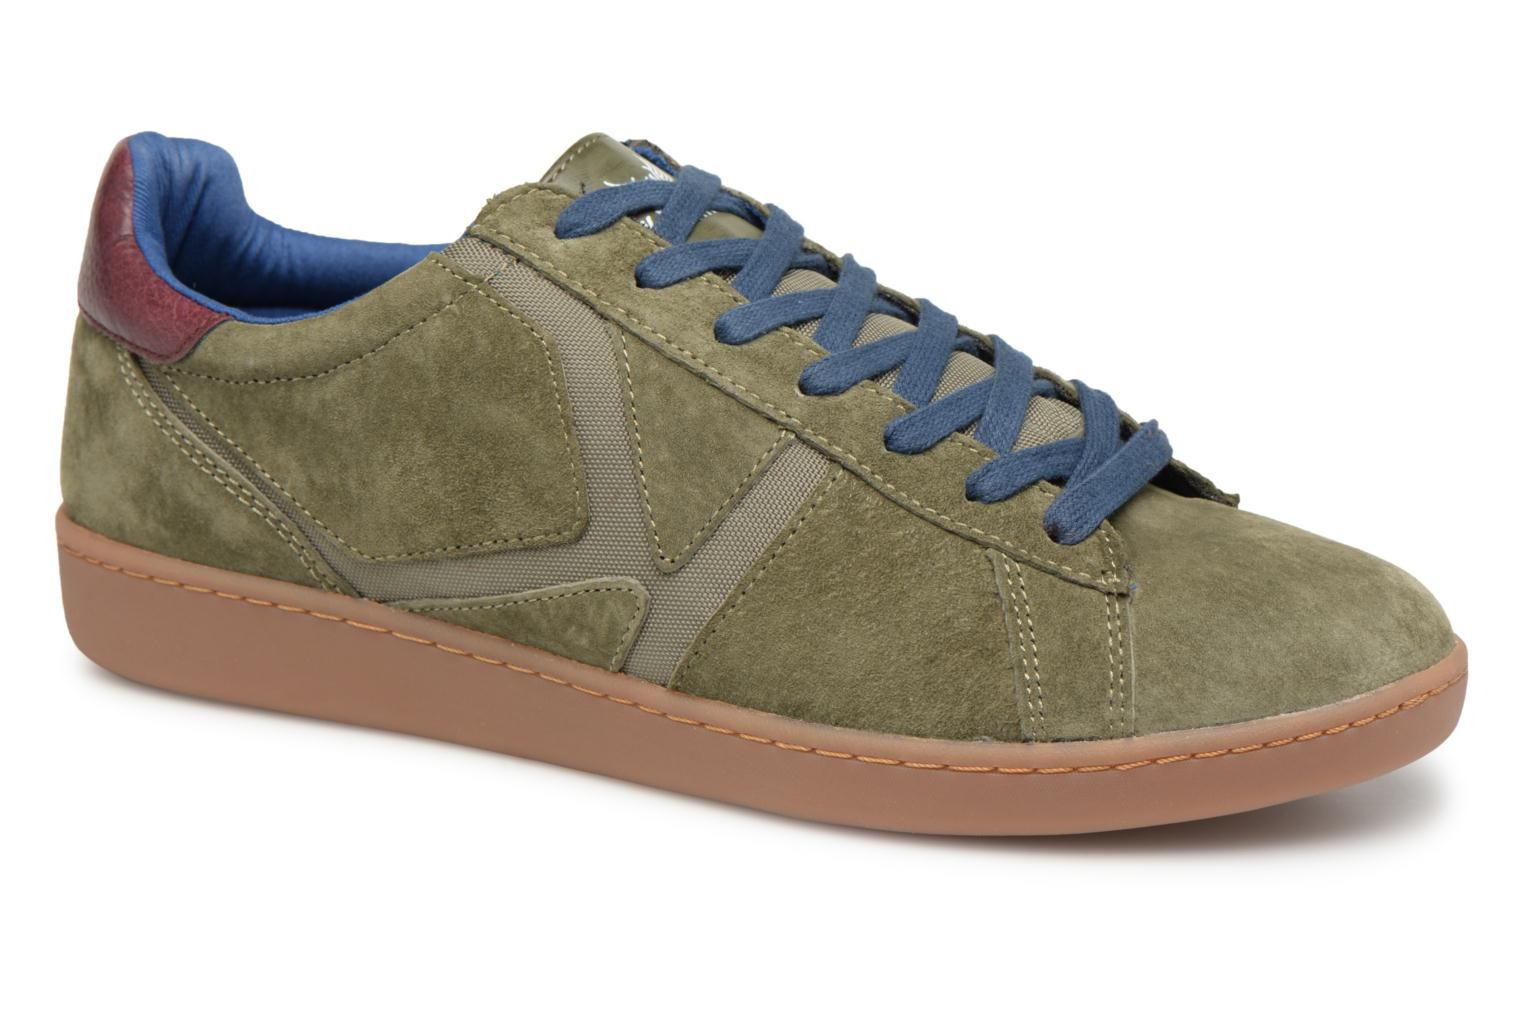 Sneakers Kaiser by Kaporal